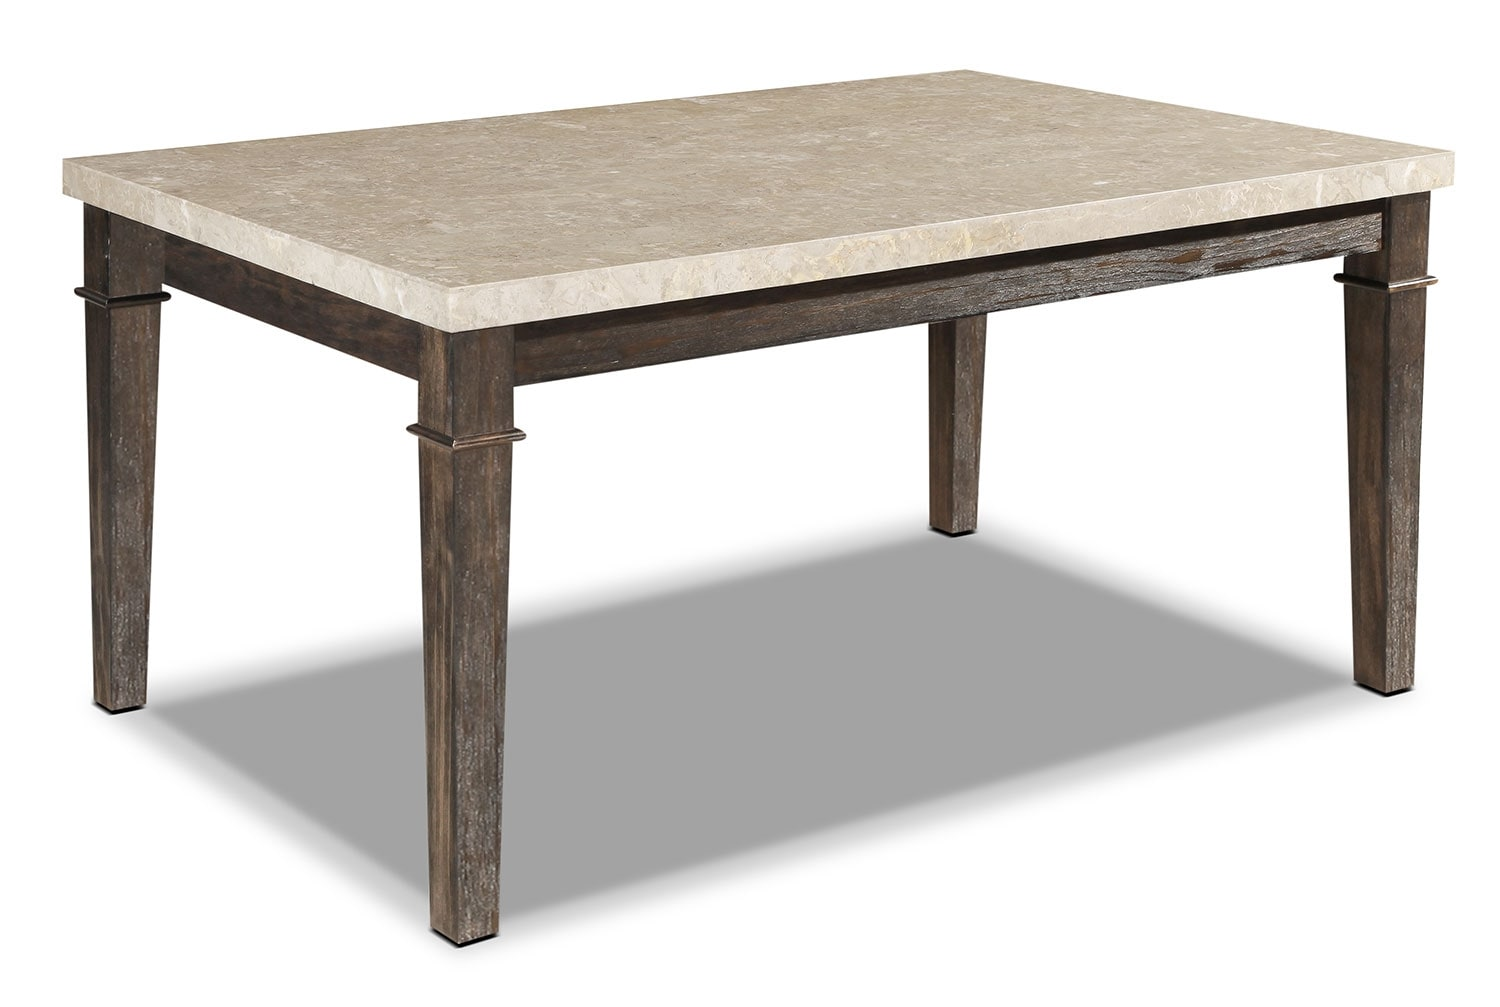 Aldo dining table the brick - Furniture picture ...